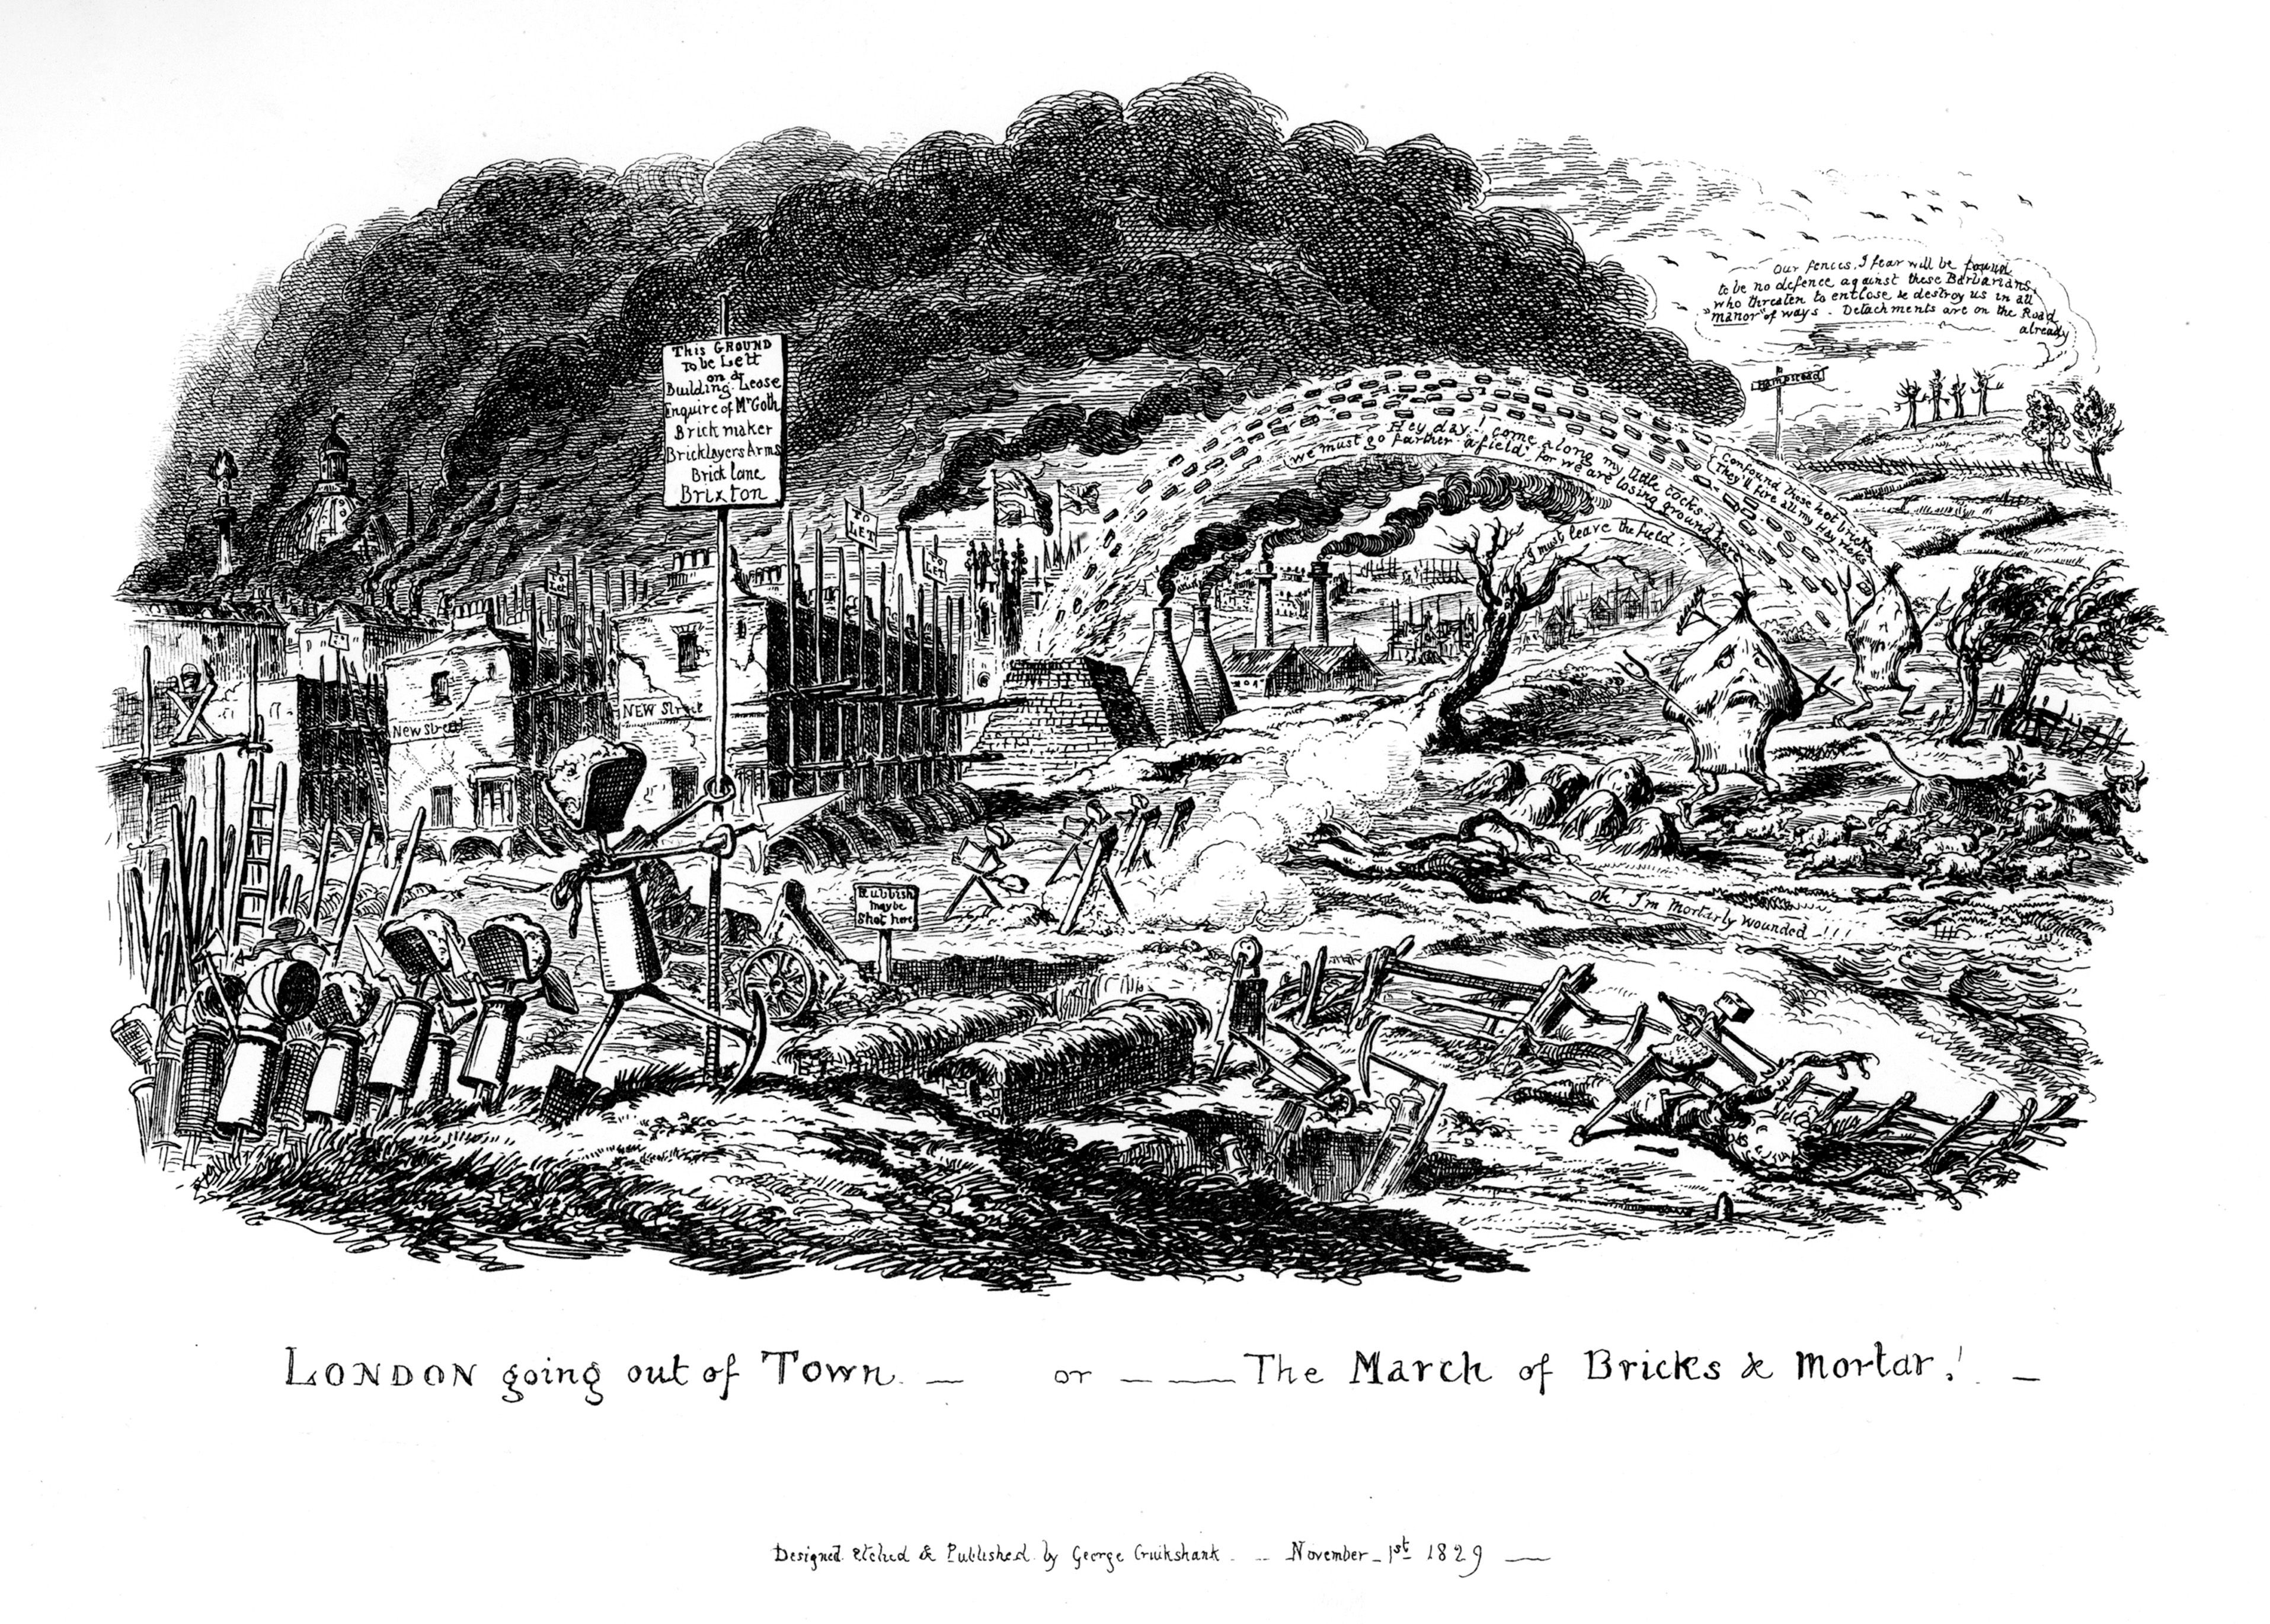 'London going out of Town - or The March of Bricks and Mortar', 1829. Artist: George Cruikshank